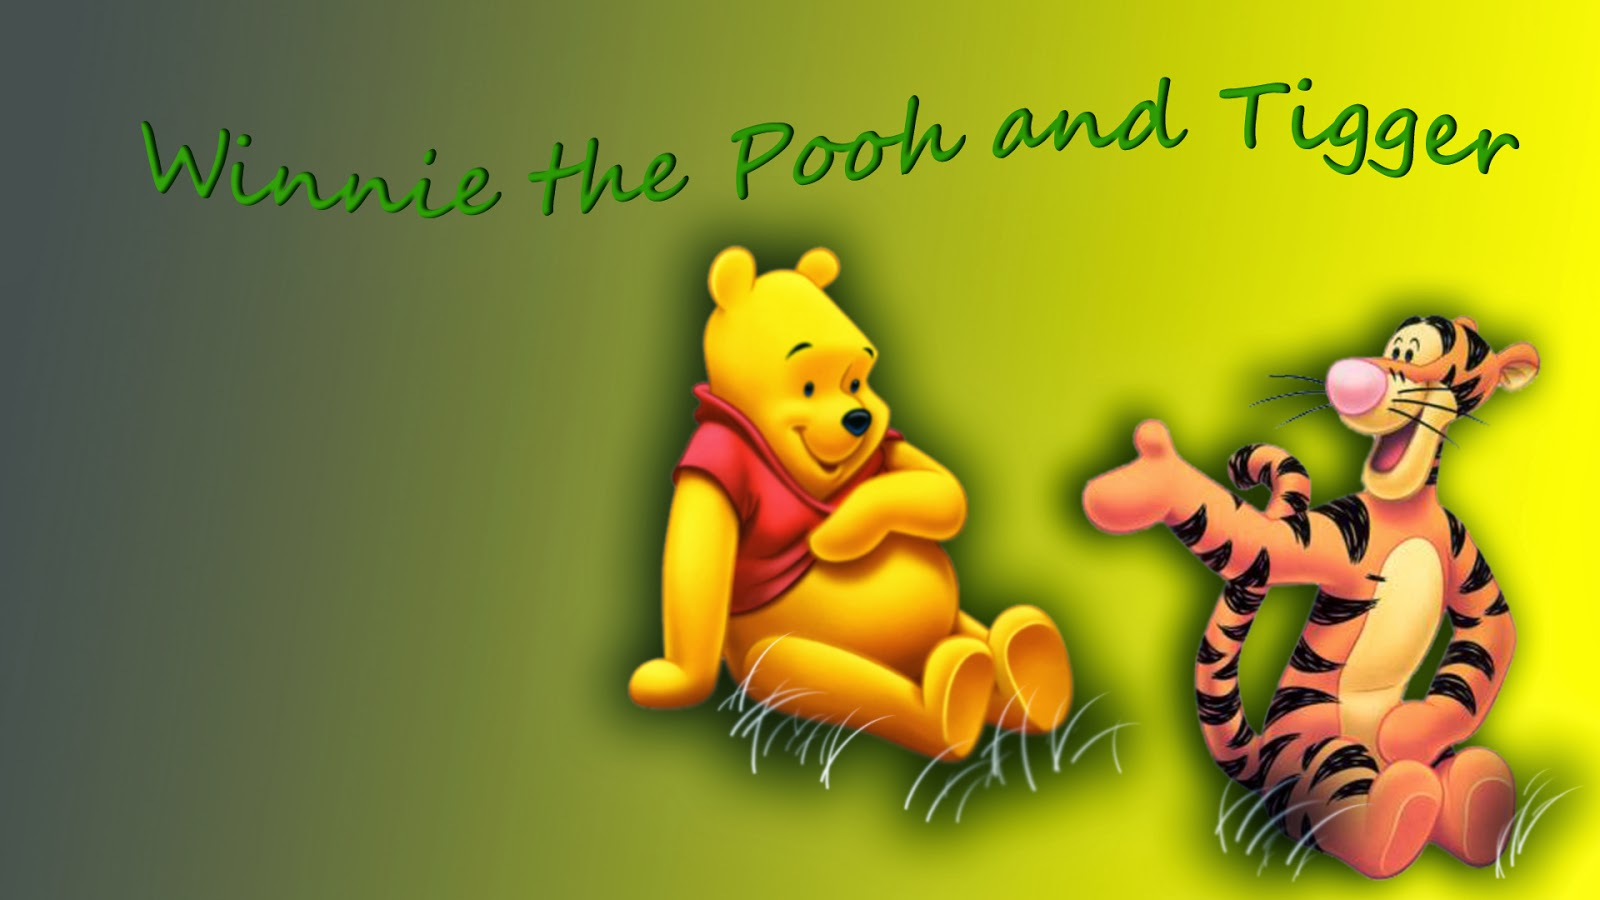 Funny Winnie The Pooh Wallpapers